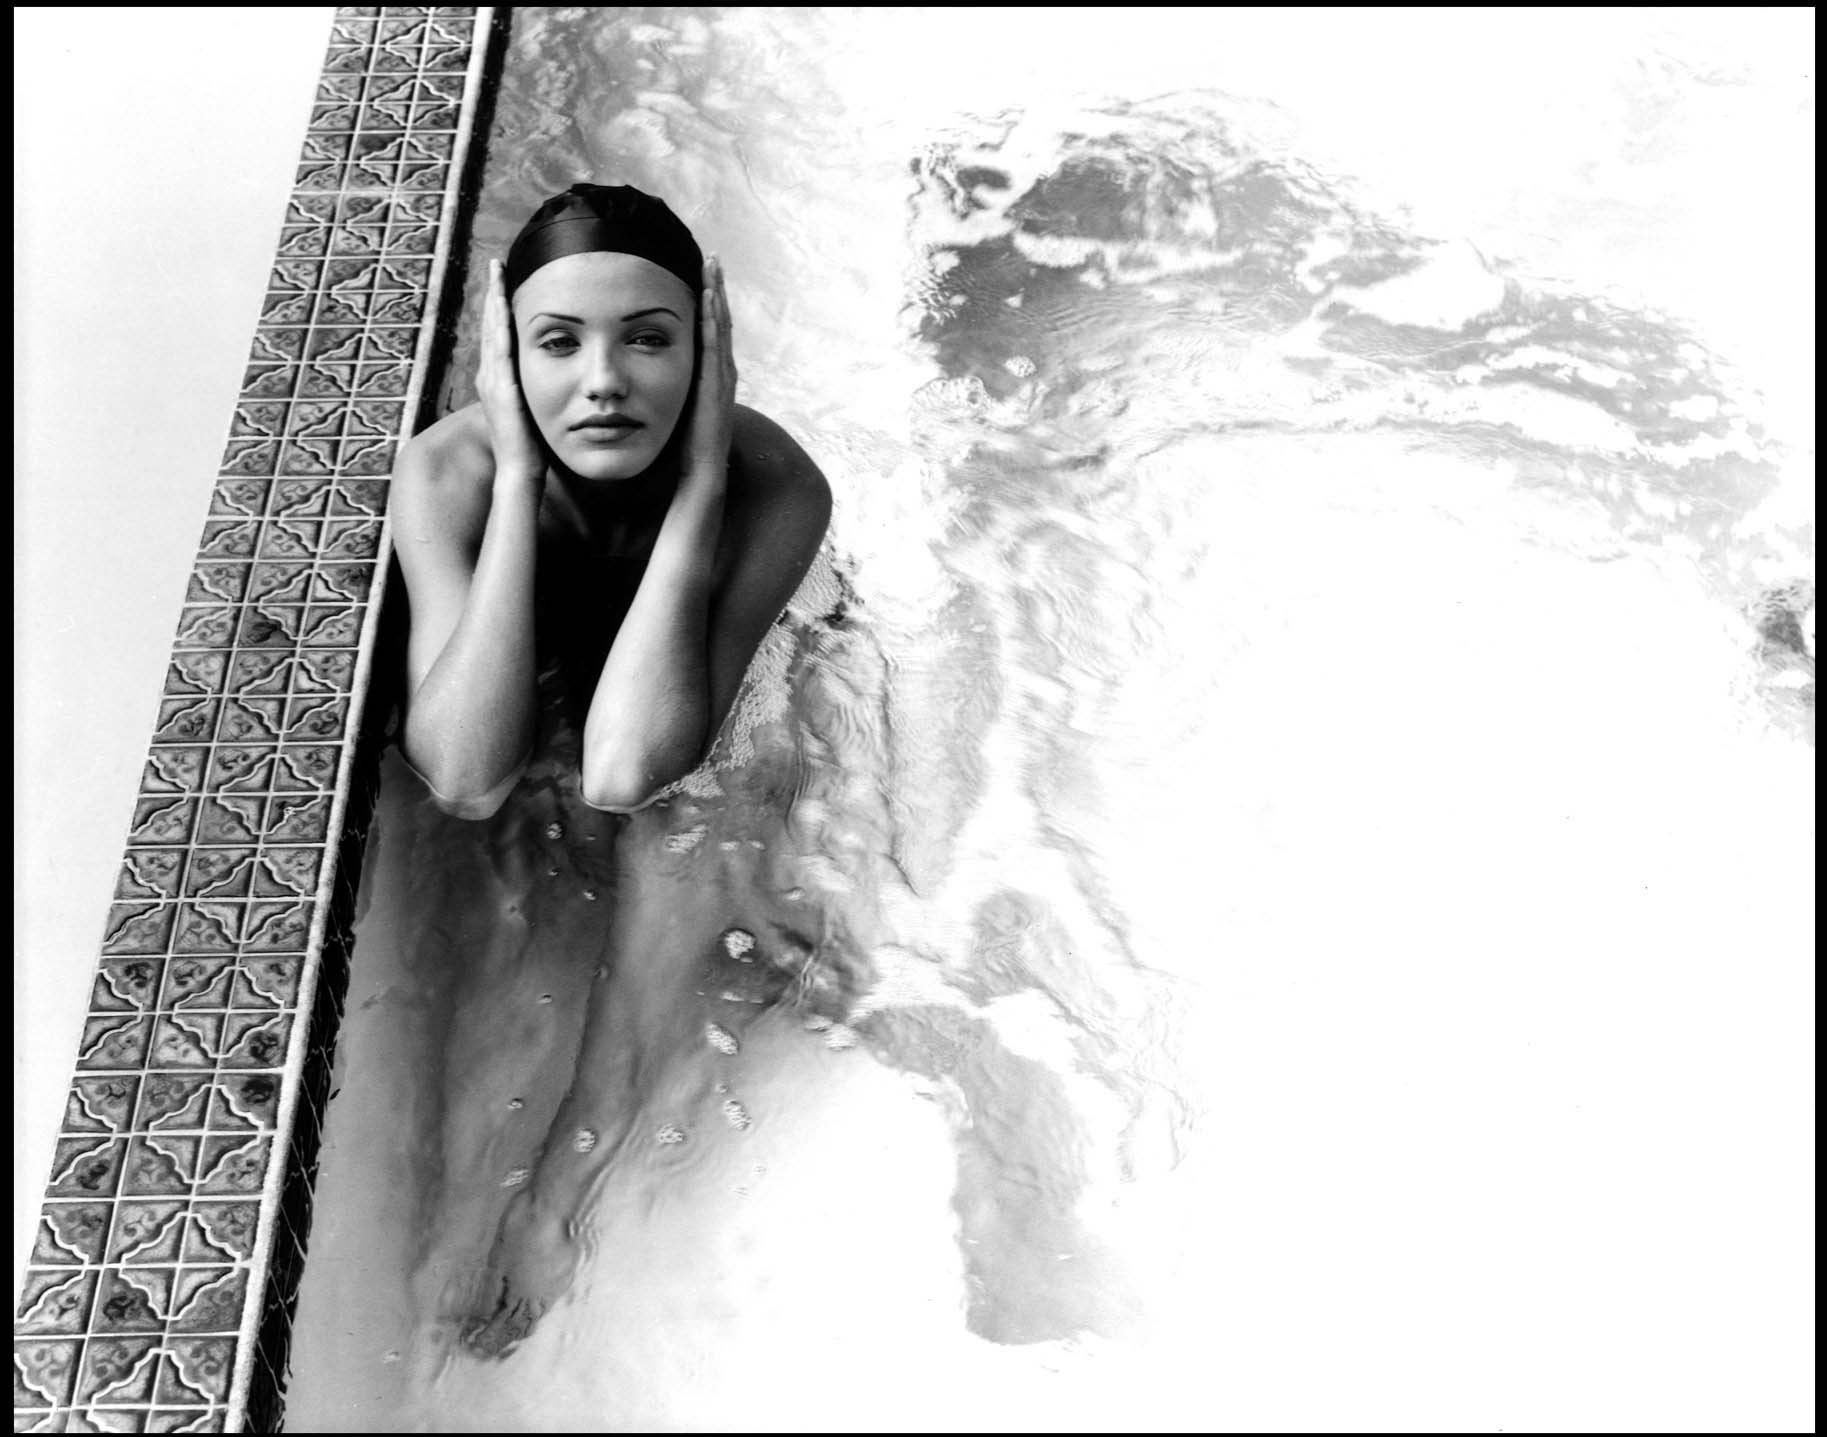 55374_Cameron_Diaz_-_Topless_photoshoot_in_a_swimming_pool0003_123_351lo.jpg